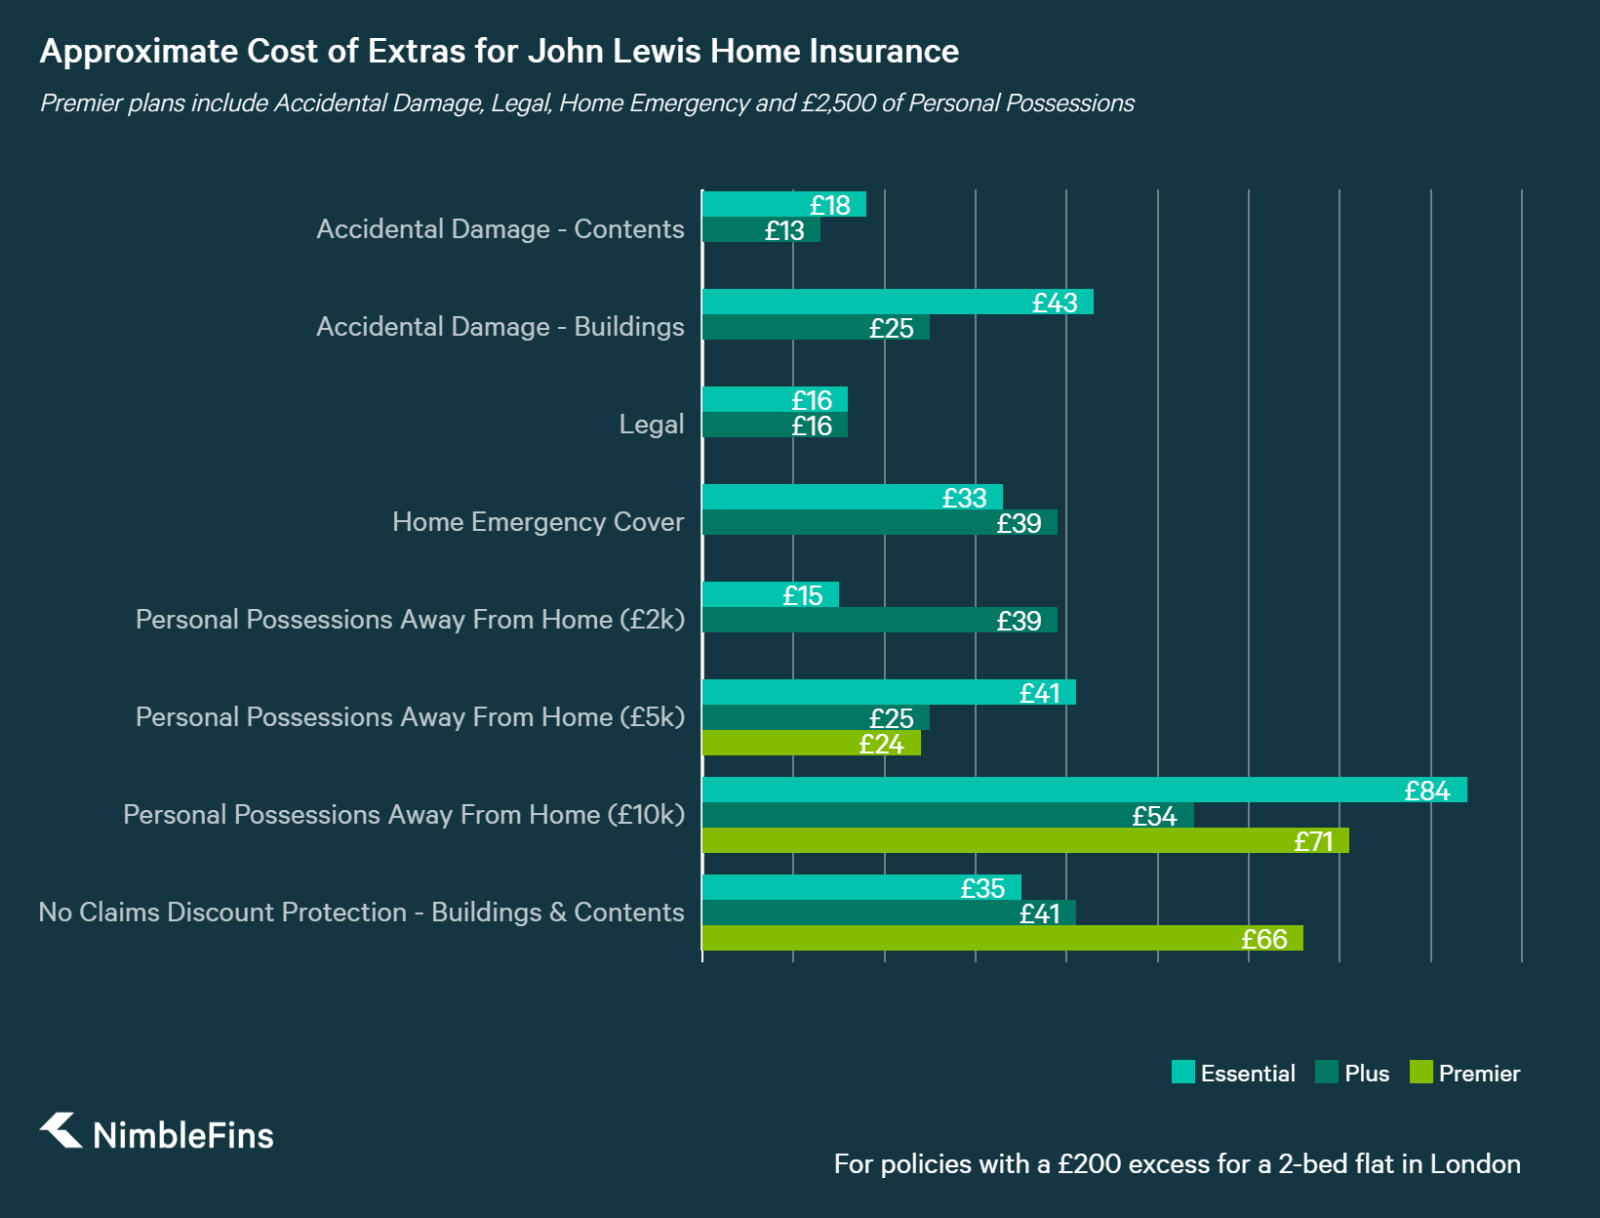 chart showing approximate cost of home insurance add ons for John Lewis home insurance